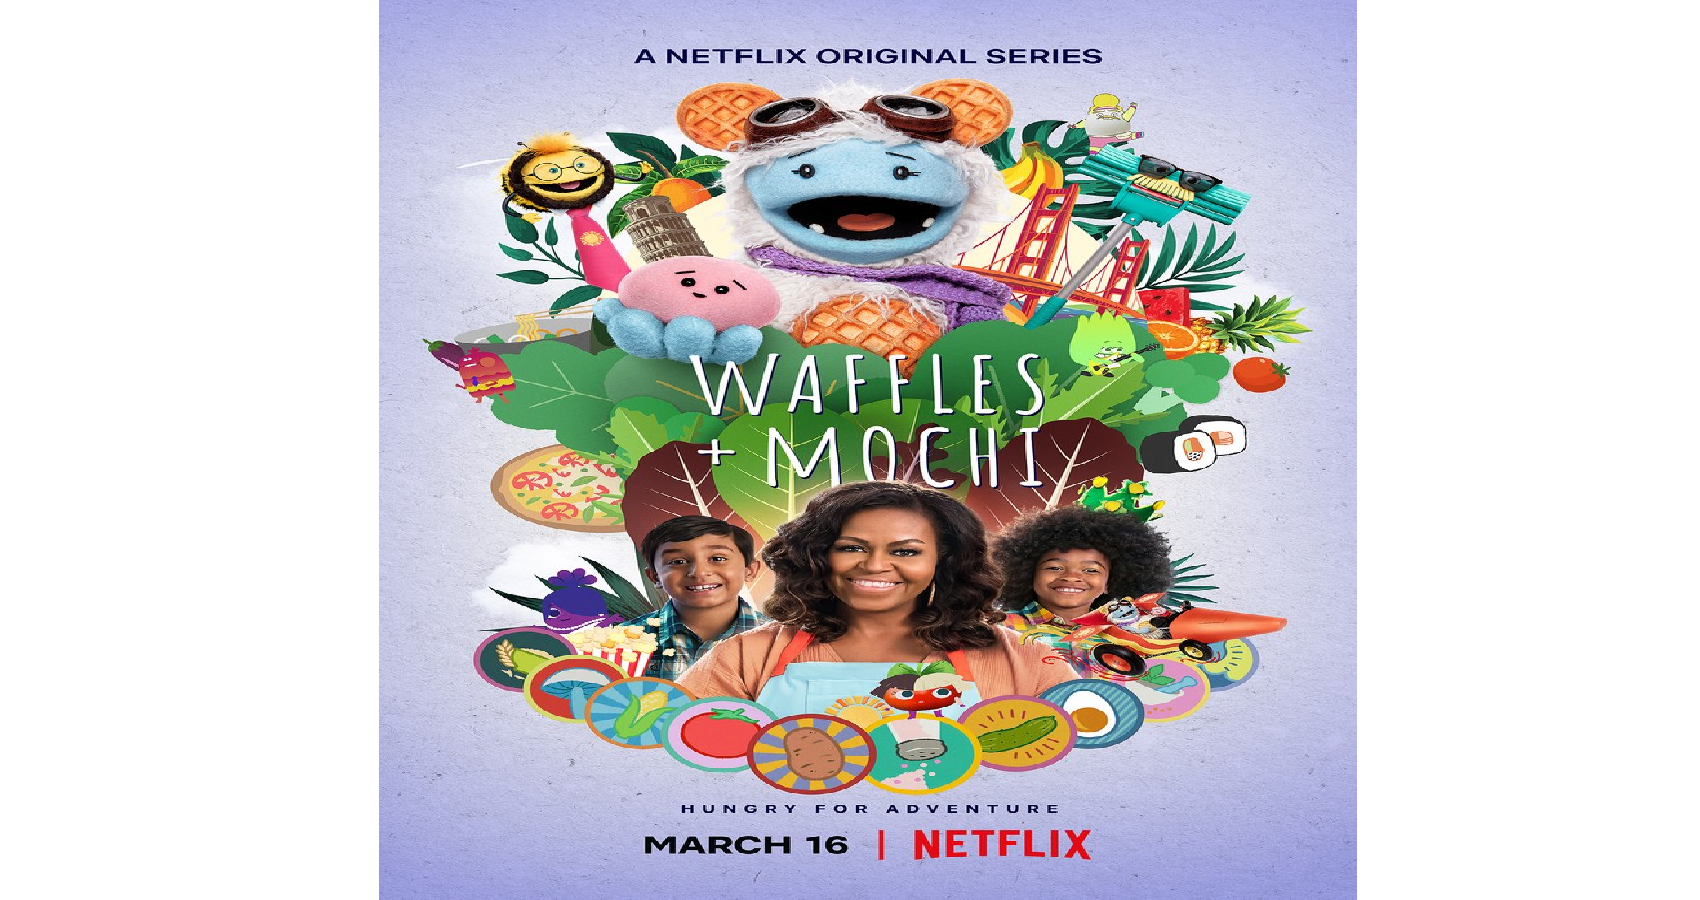 Michelle Obama With Puppets Showcases 'Waffles + Mochi' On Netflix, Taking Kids to Japan, Italy, and More